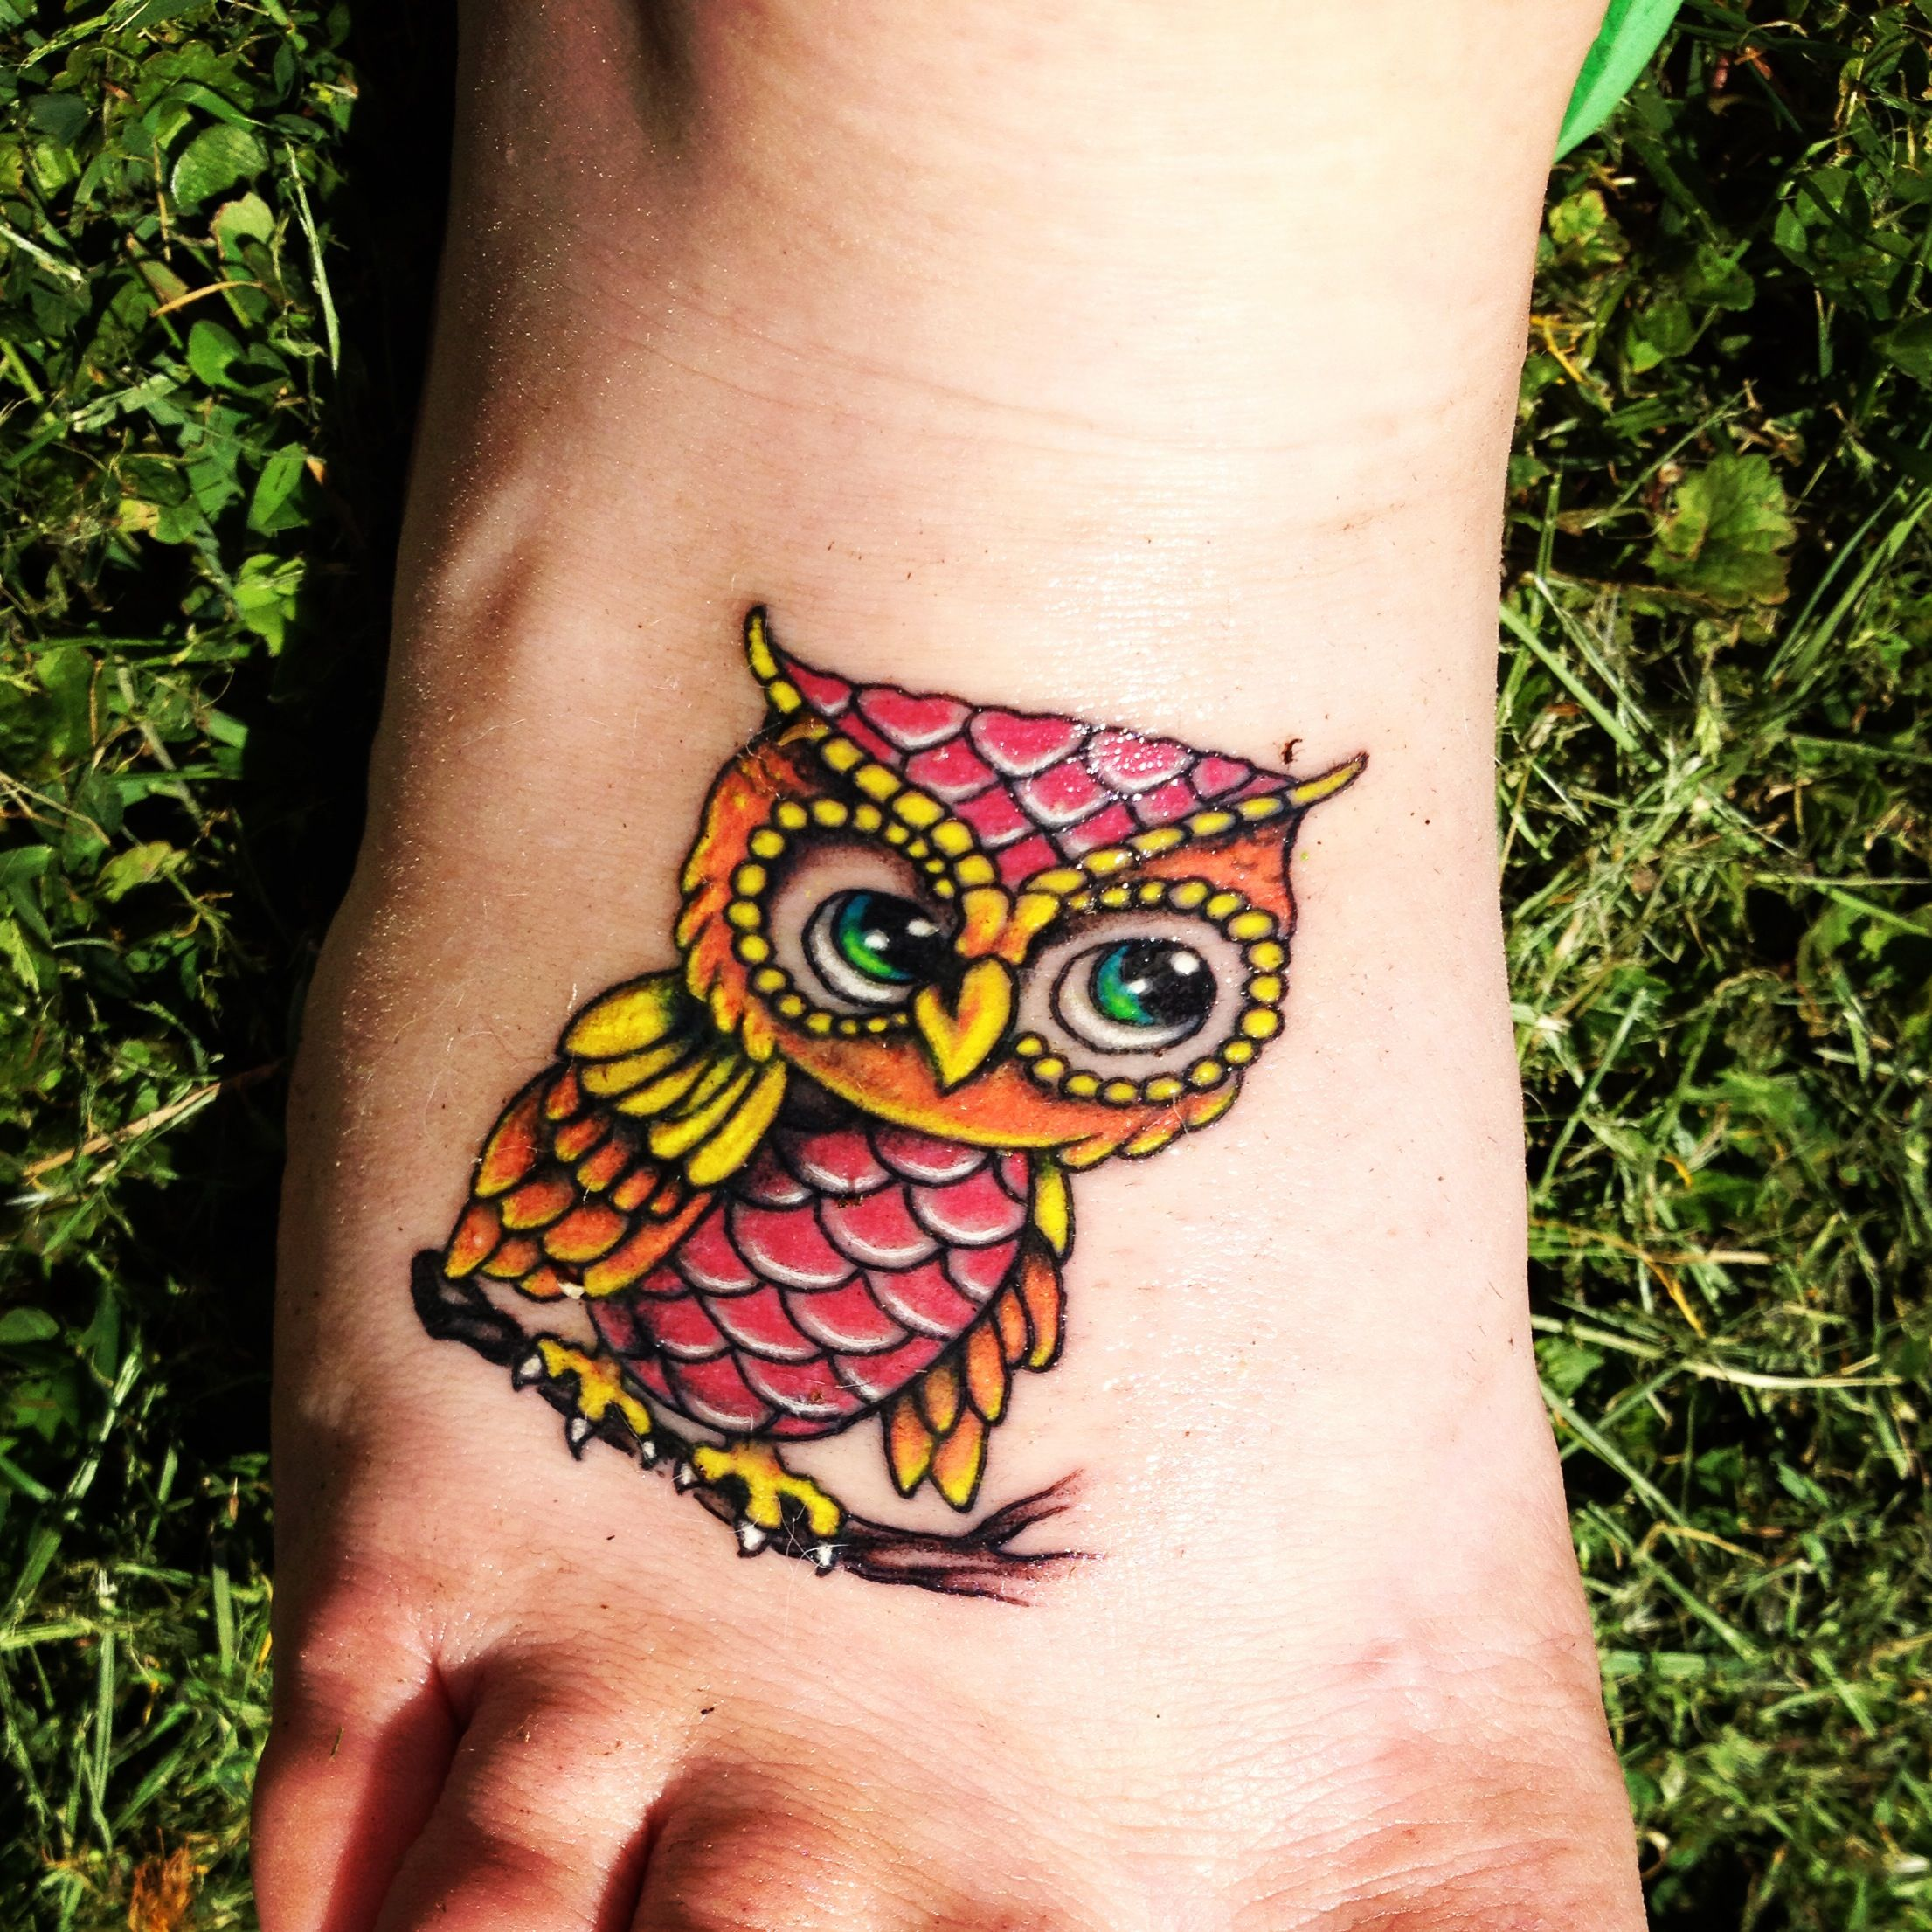 Owl Tattoo Baby Owl Tattoos Colorful Owl Tattoo Owl Tattoo